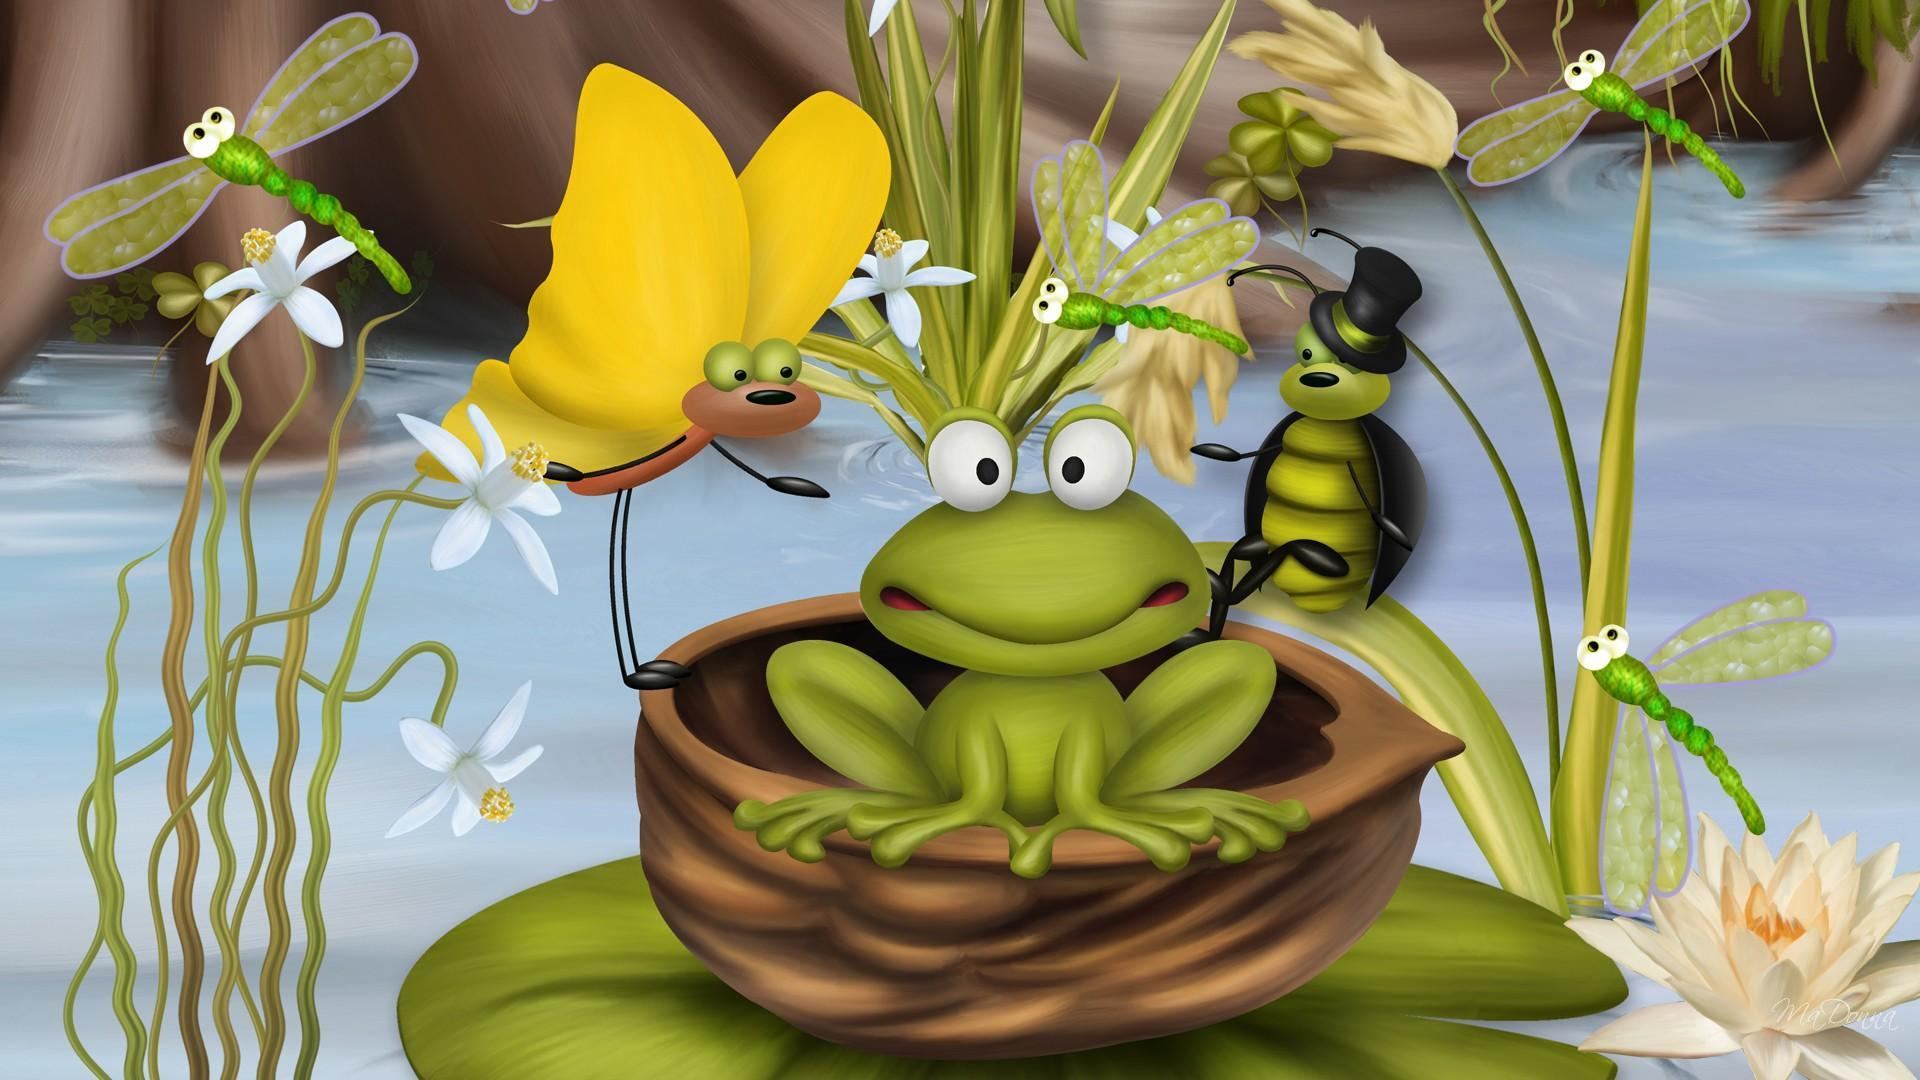 Froggy Wallpapers - Wallpaper Cave